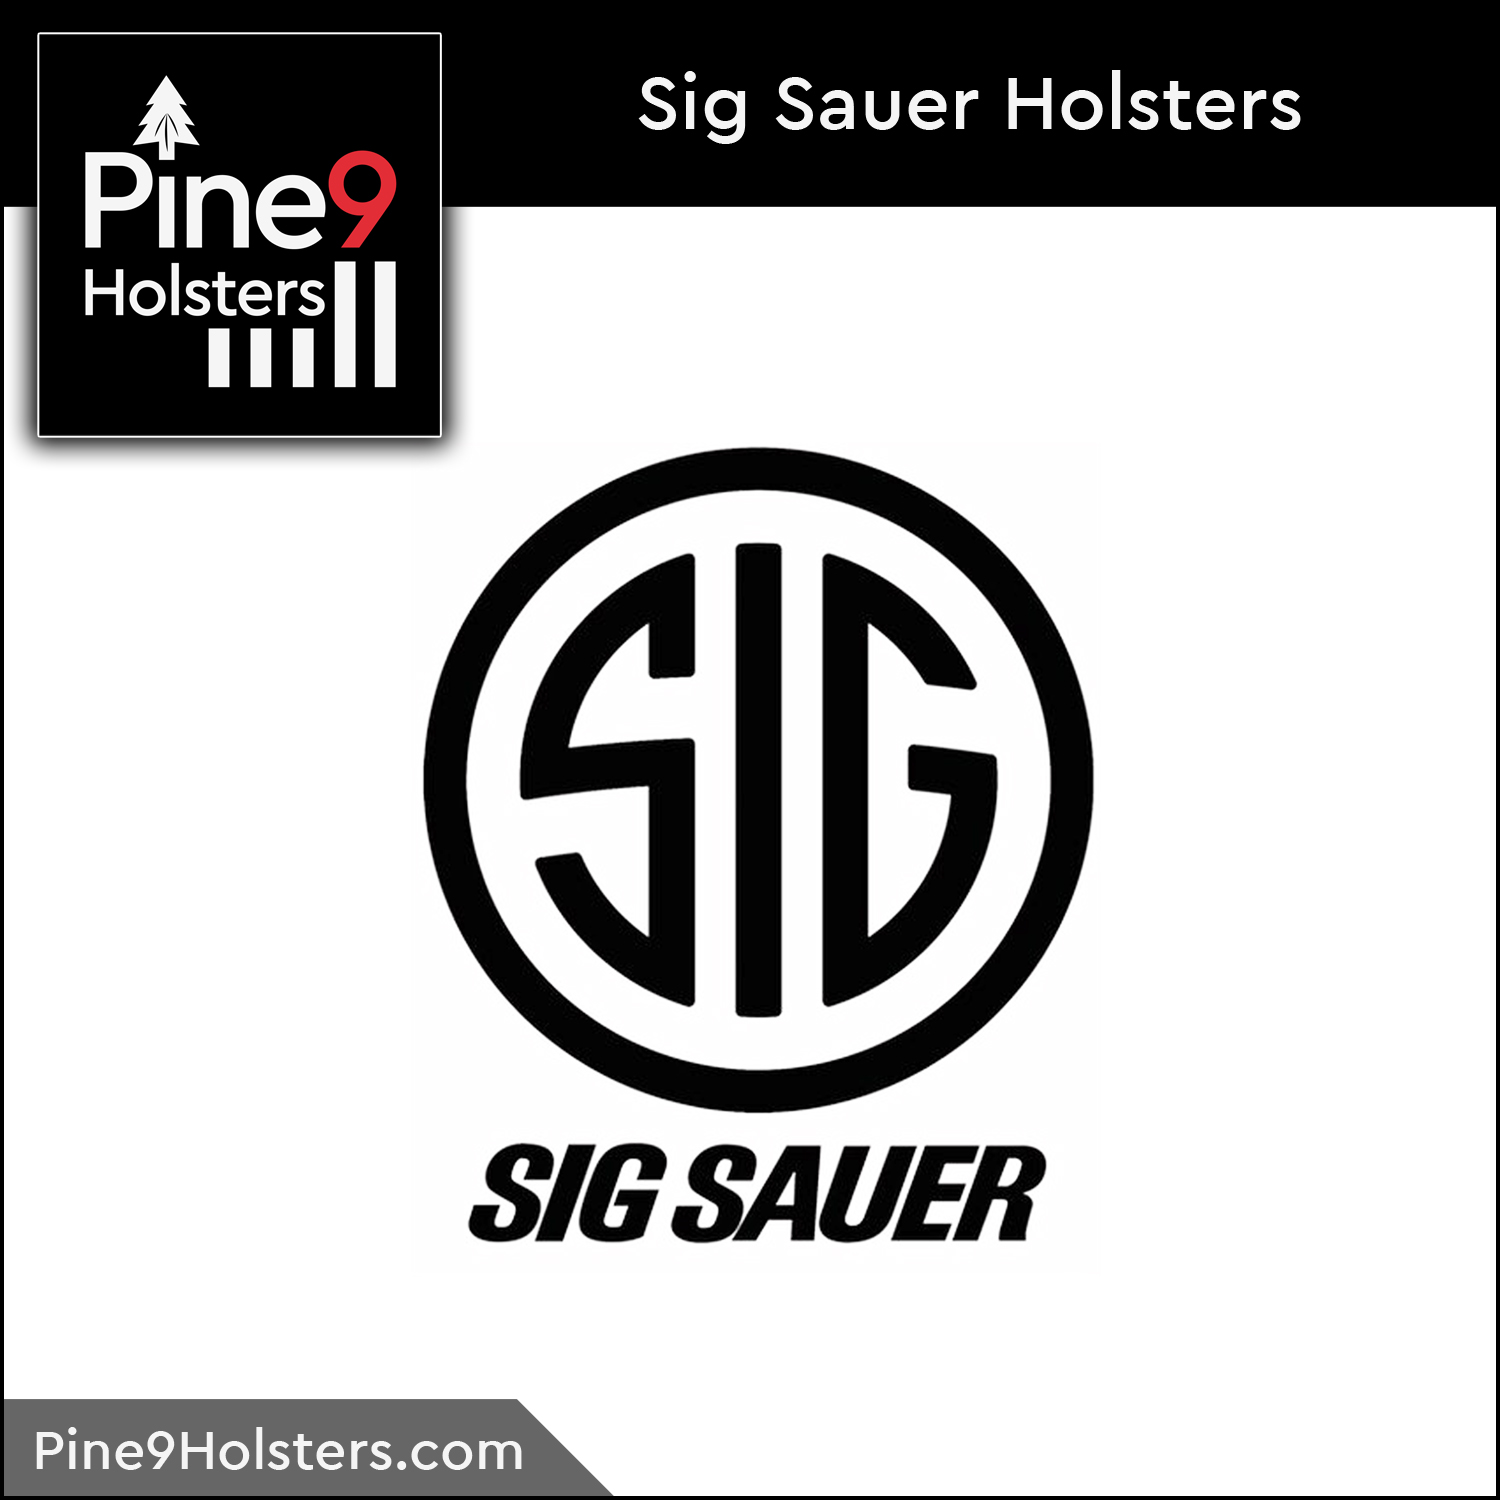 Pine9 Holsters Sig Sauer